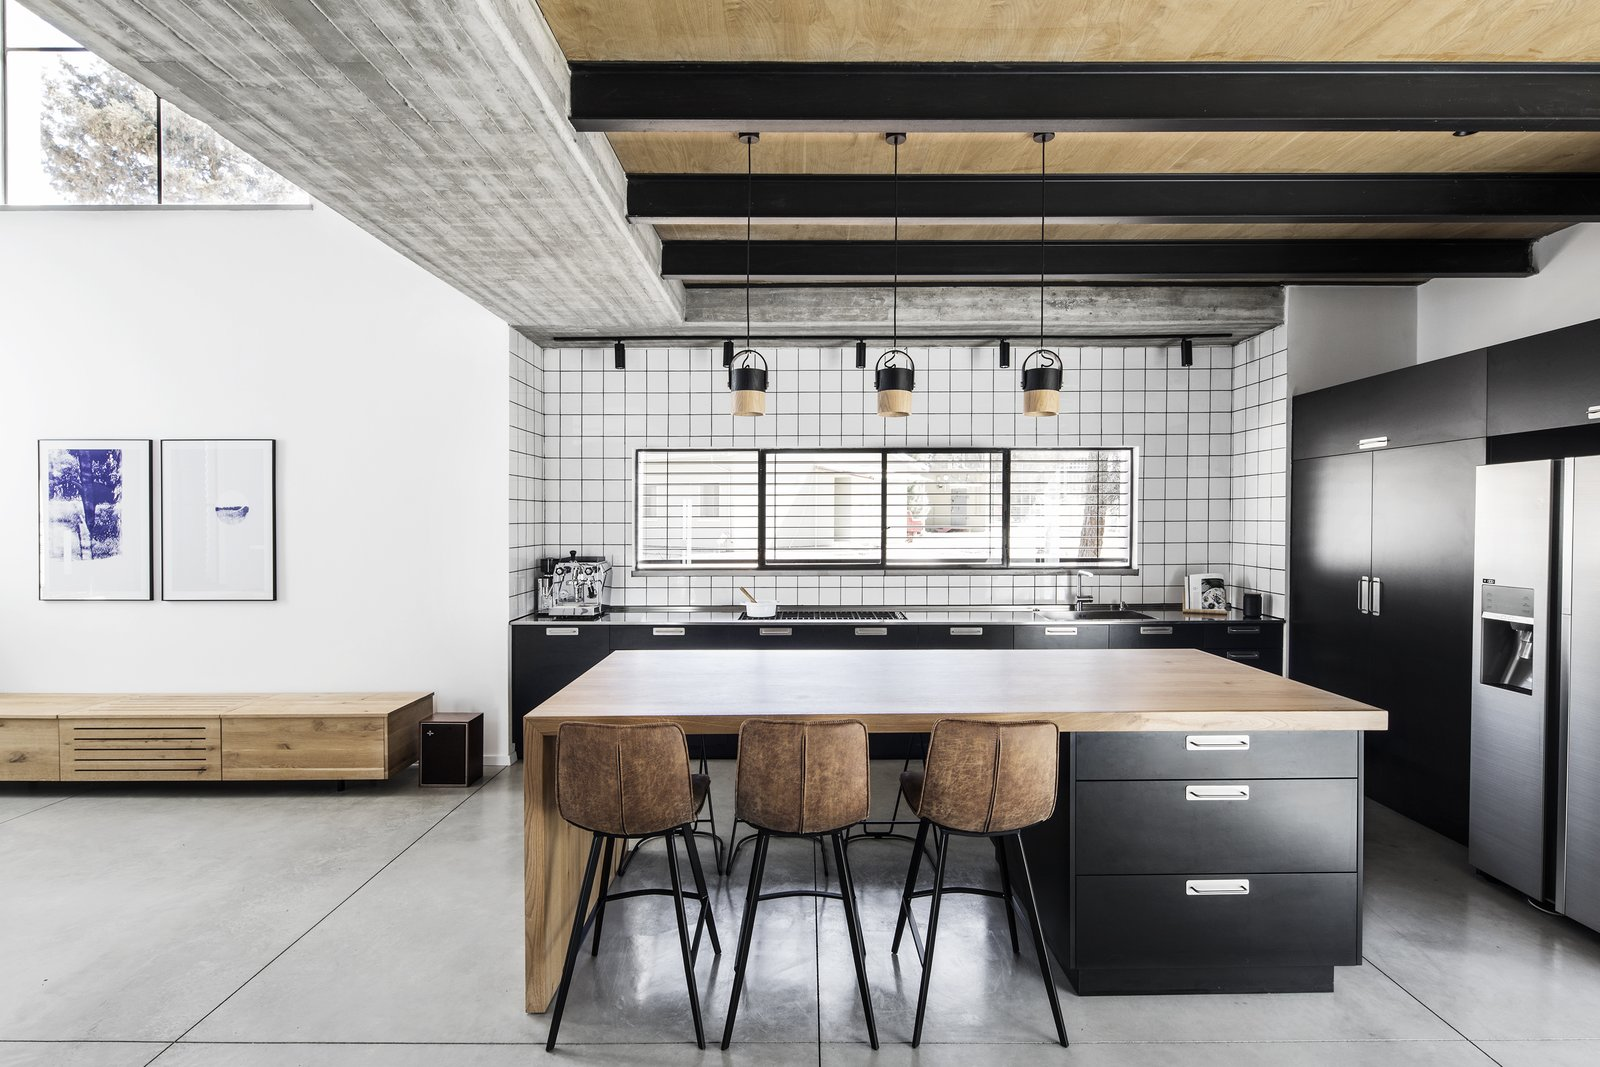 Kitchen, Refrigerator, Cooktops, Dishwasher, Metal, Colorful, Concrete, Ceramic Tile, Ceiling, Pendant, and Undermount  Best Kitchen Cooktops Pendant Metal Concrete Photos from Nir Am House